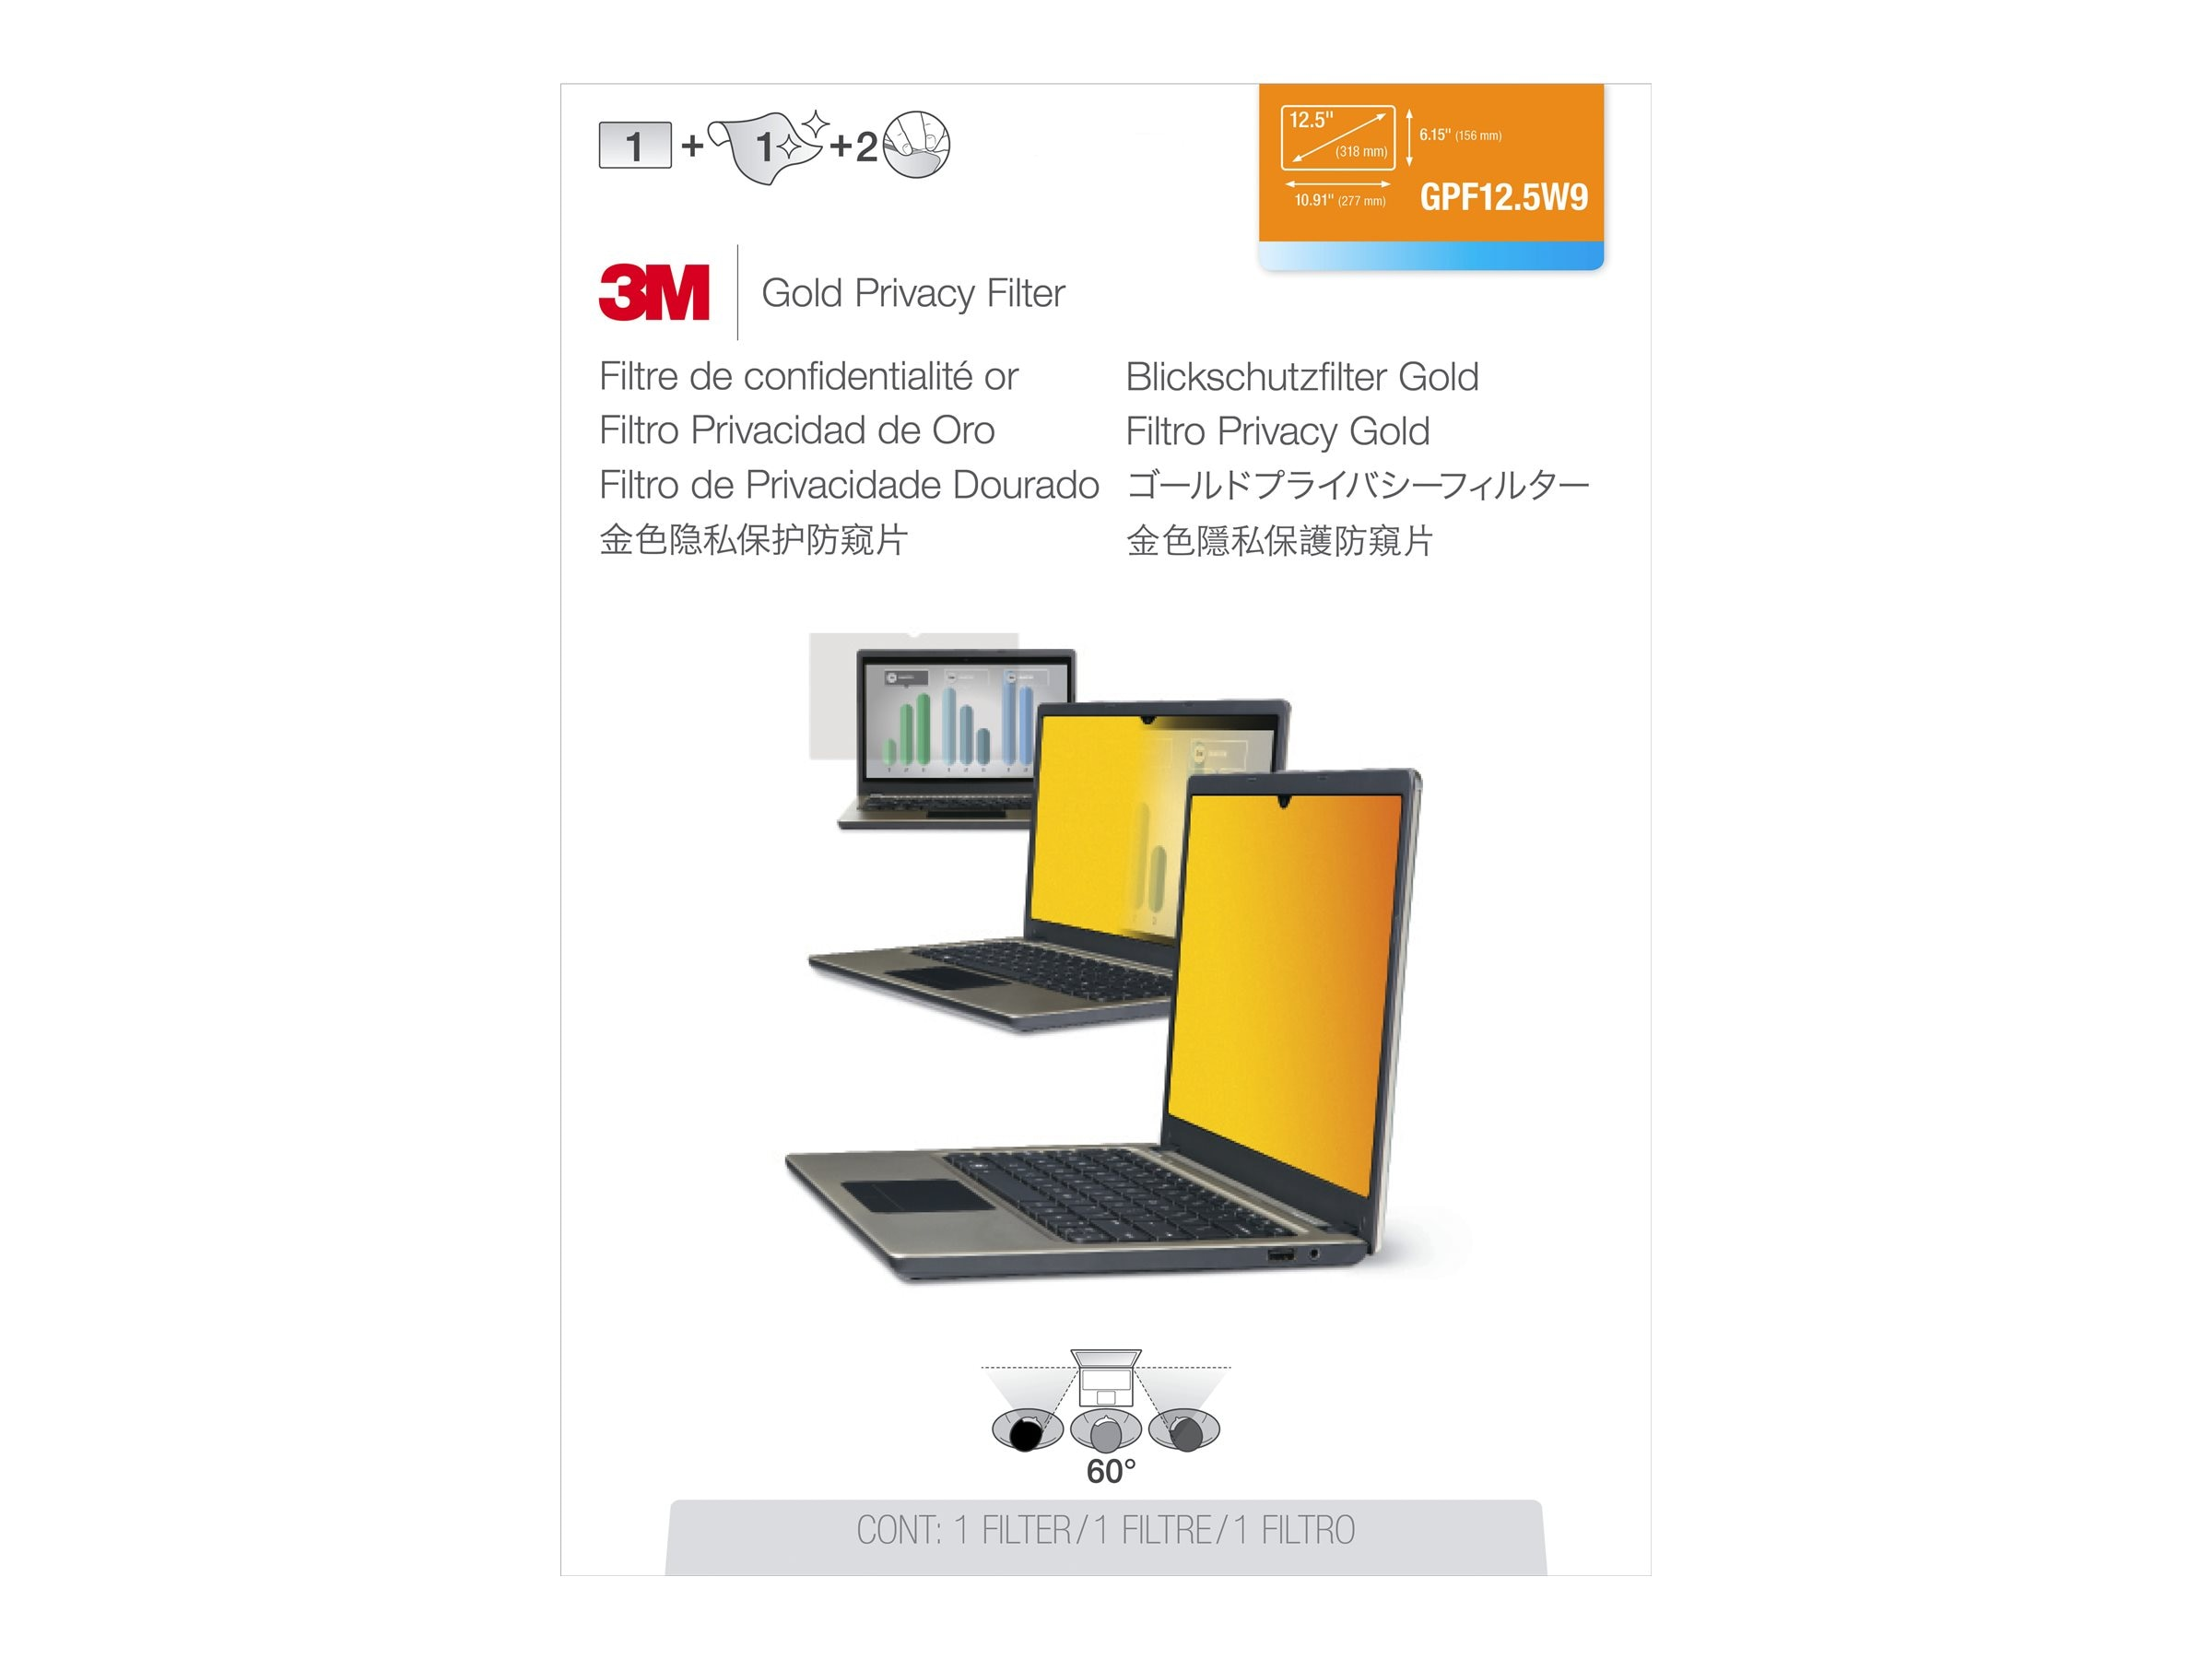 3M 12.5 Widescreen Gold Privacy Filter, 16:9, GPF12.5W9